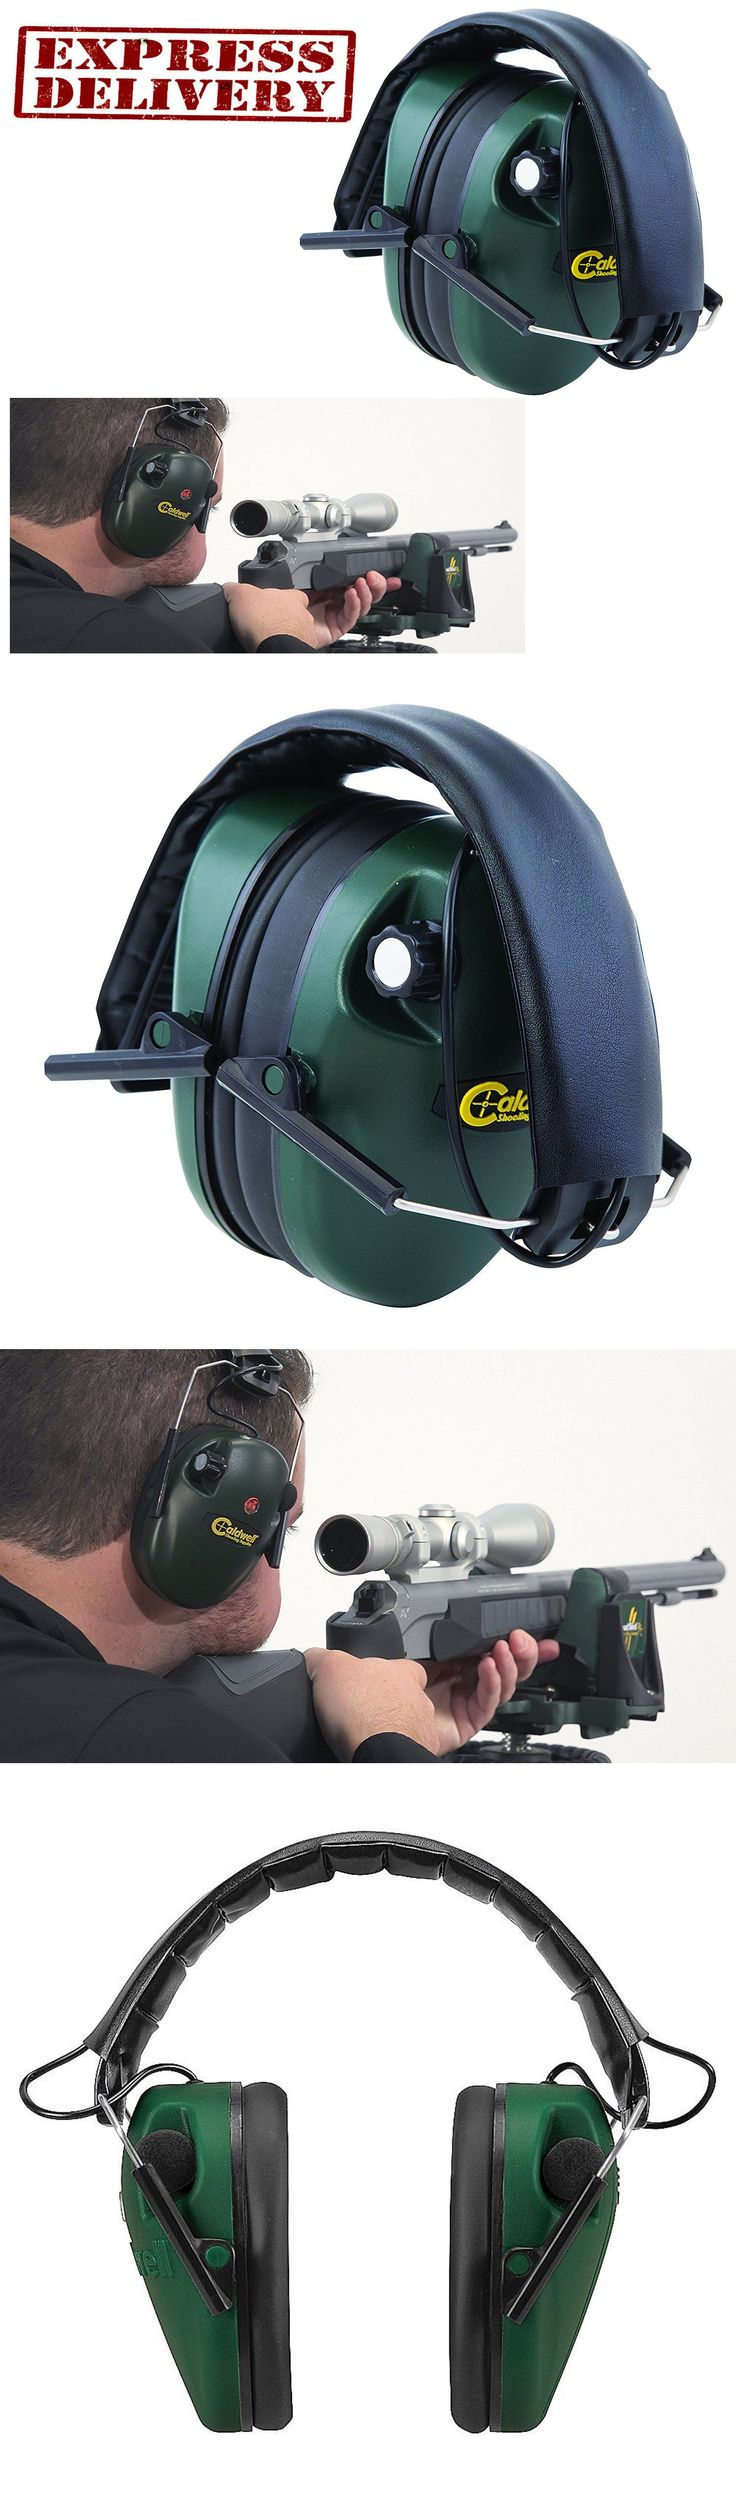 Hearing Protection 73942: Electronic Shooting Ear Protection Muffs Sport Hunt Noise Cancelling Head Gear -> BUY IT NOW ONLY: $34.5 on eBay!